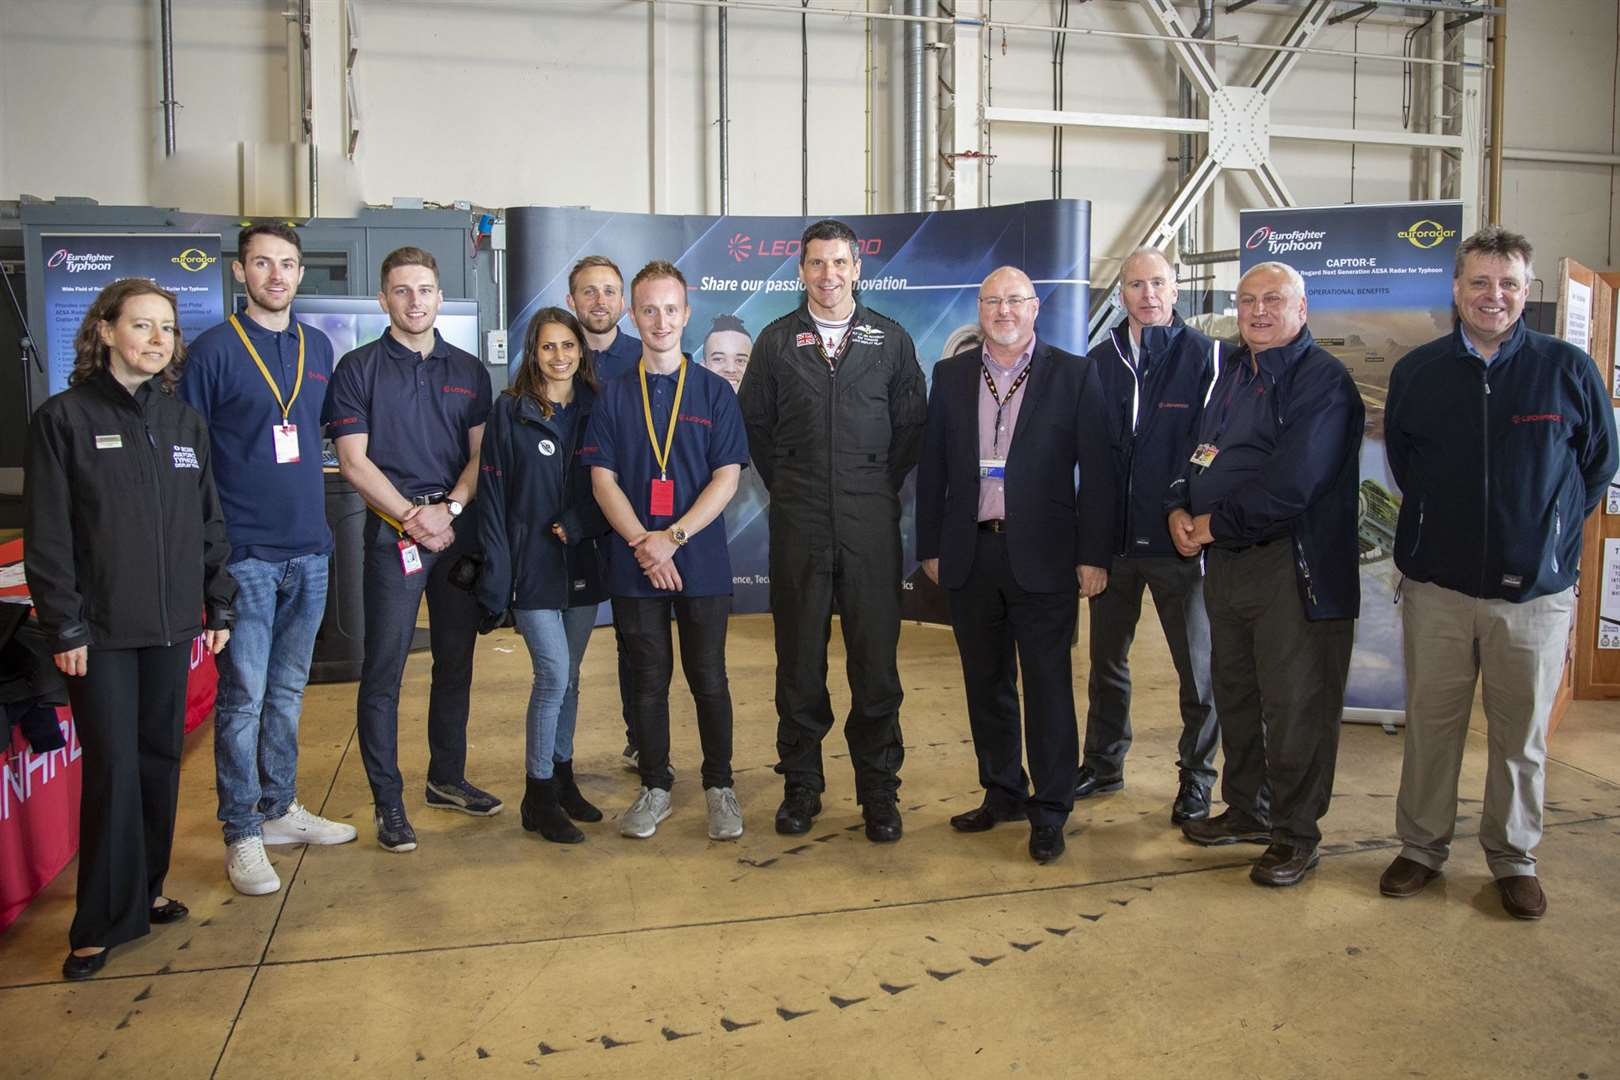 Leonardo apprentices and graduates were on hand at RAF Lossiemouth to showcase technology.